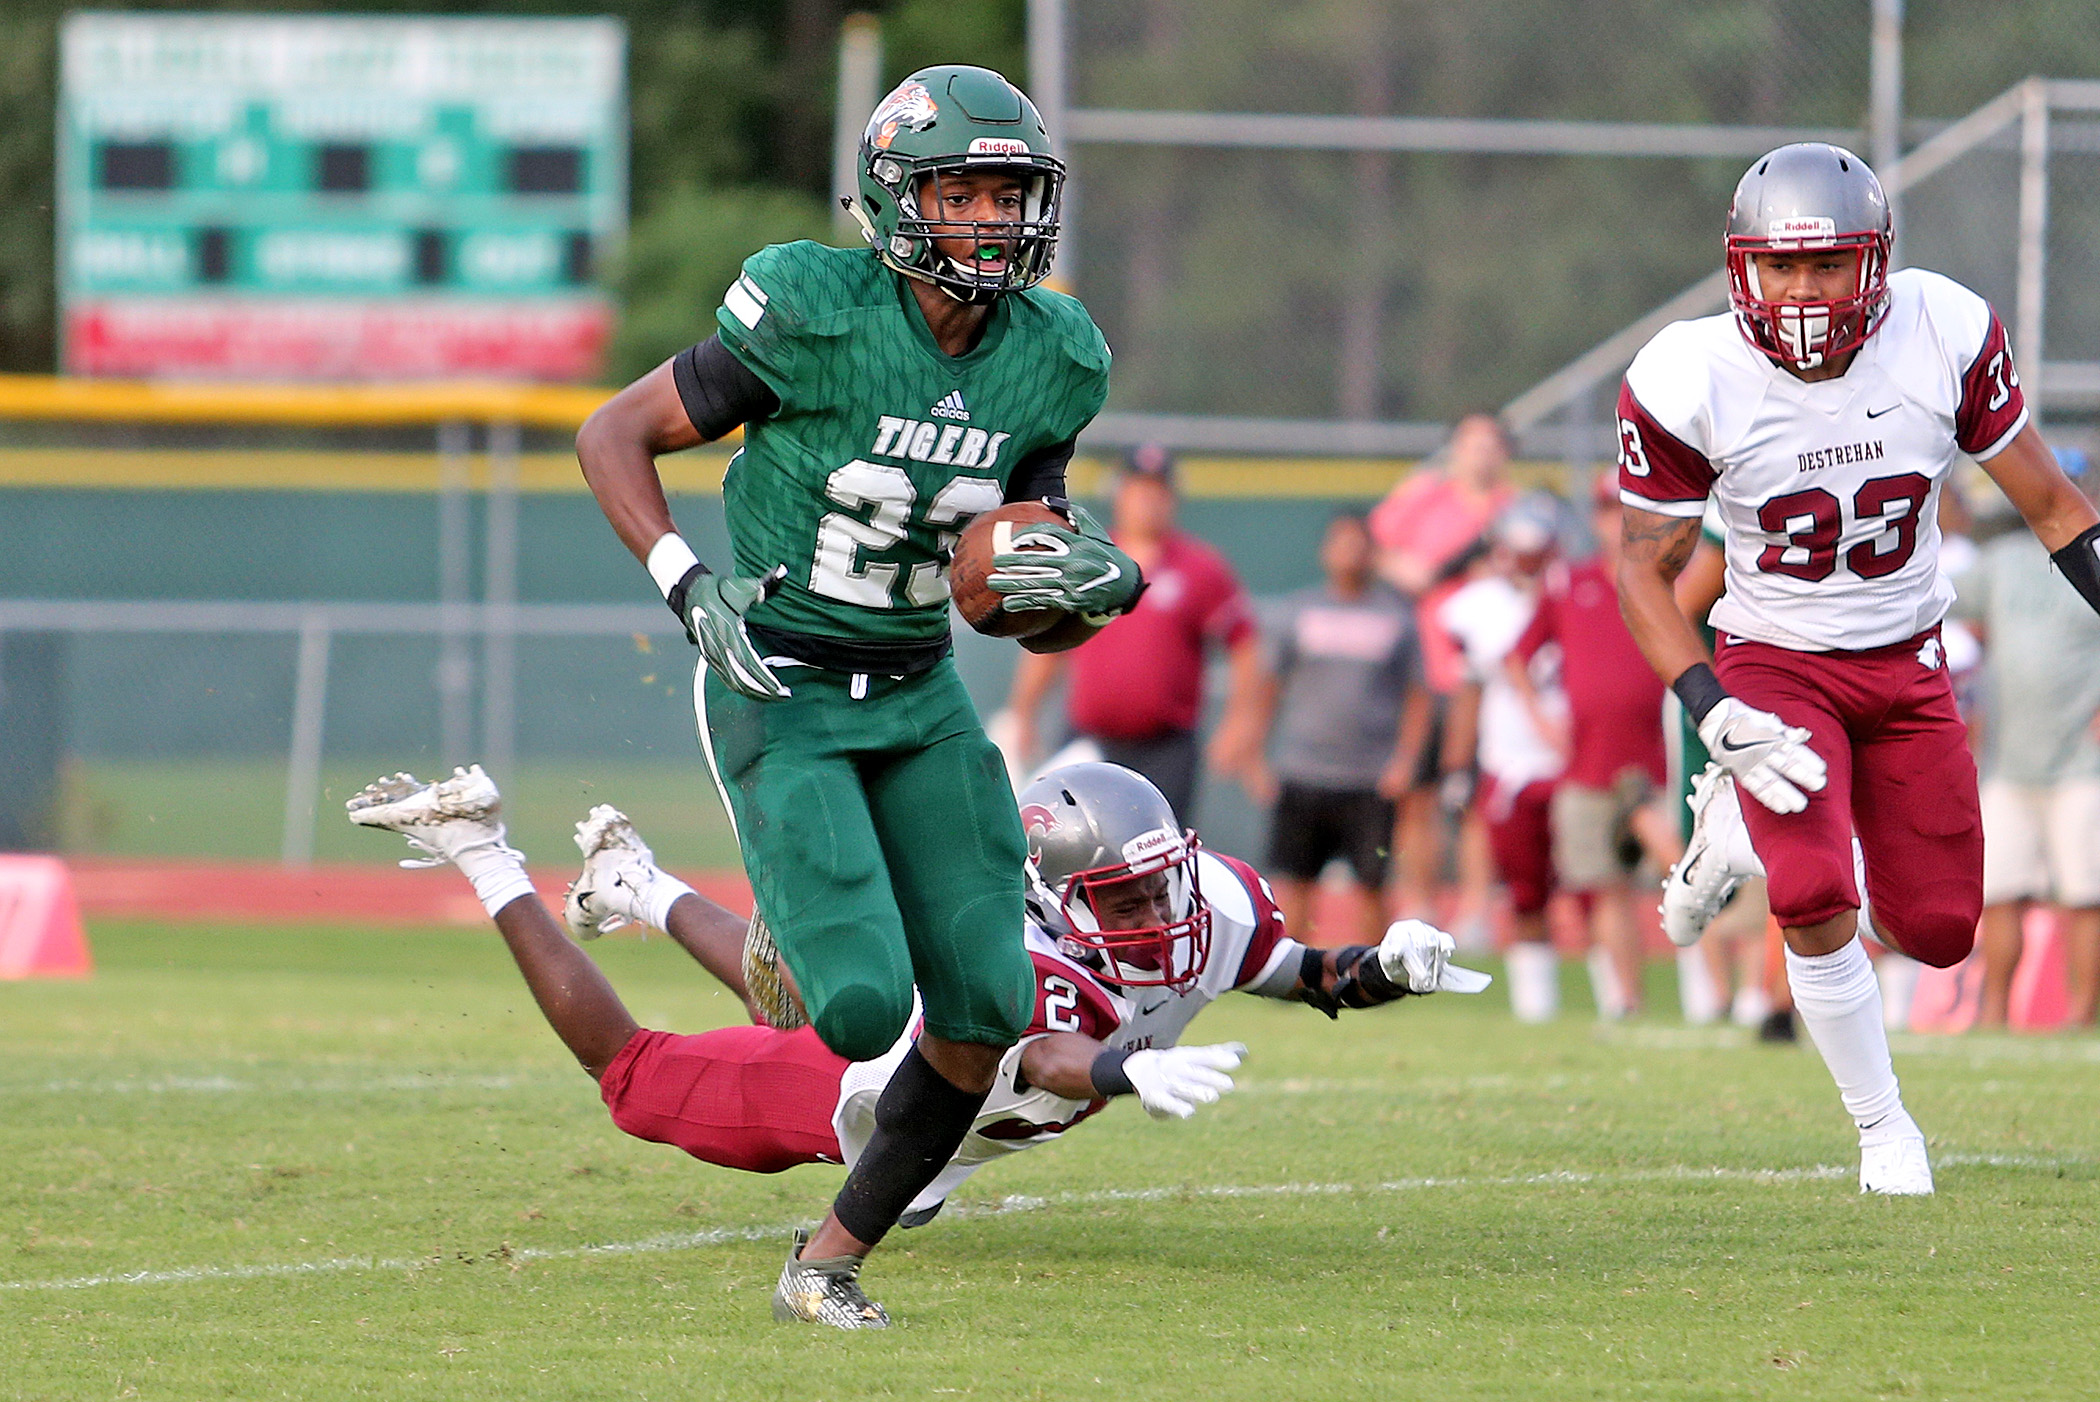 Slidell wide receiver Harlan Dixon (23) scores on a 69-yard reception in the first quarter during the game between the Destrehan Wildcats and Slidell Tigers in Slidell on Friday, August 31, 2018. (Photo by Michael DeMocker, NOLA.com | The Times-Picayune)